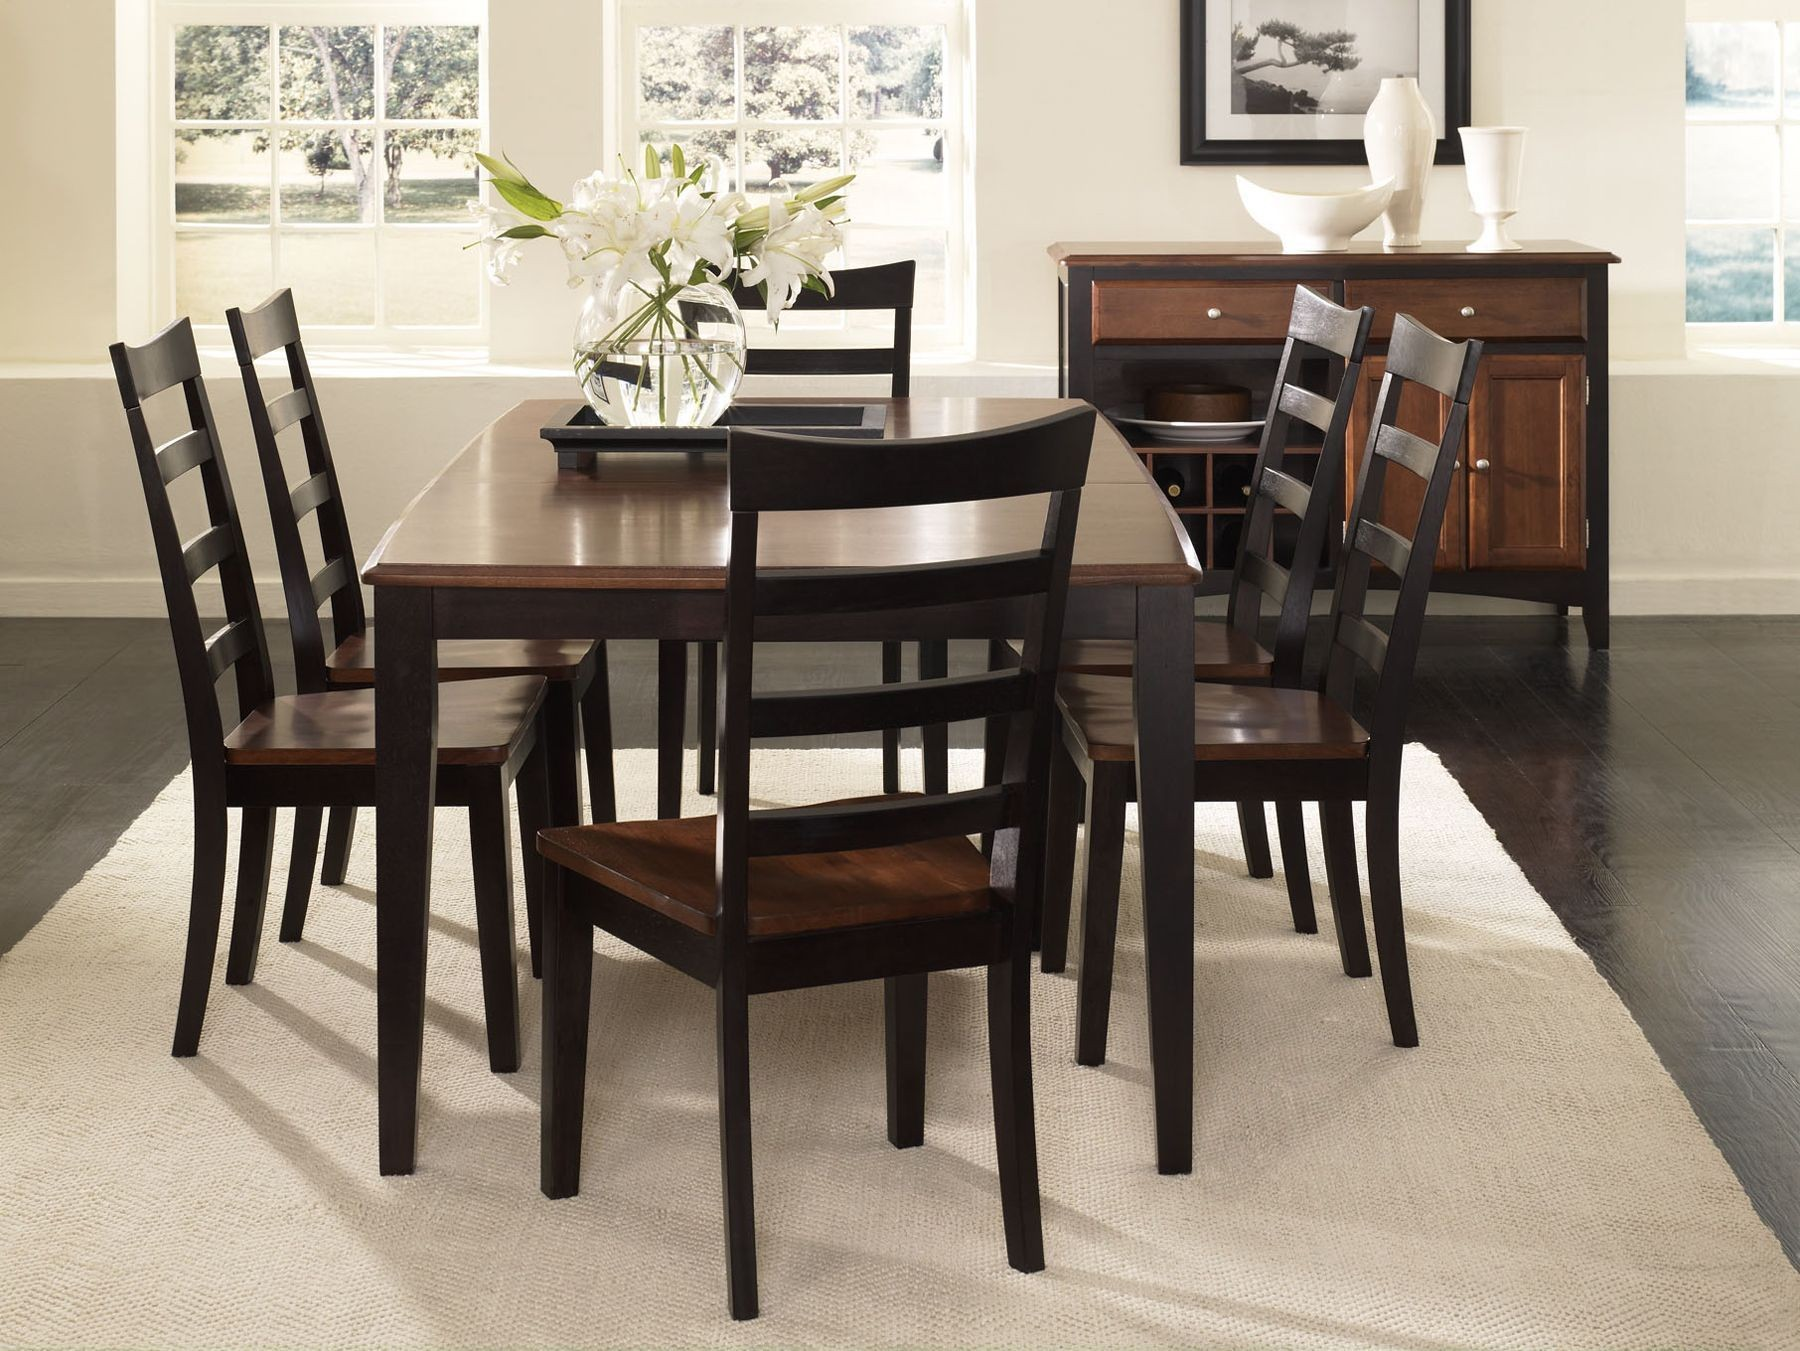 Bristol Point 78 Oak Espresso Extendable Rectangular Dining Room Set Btloe6320 A America